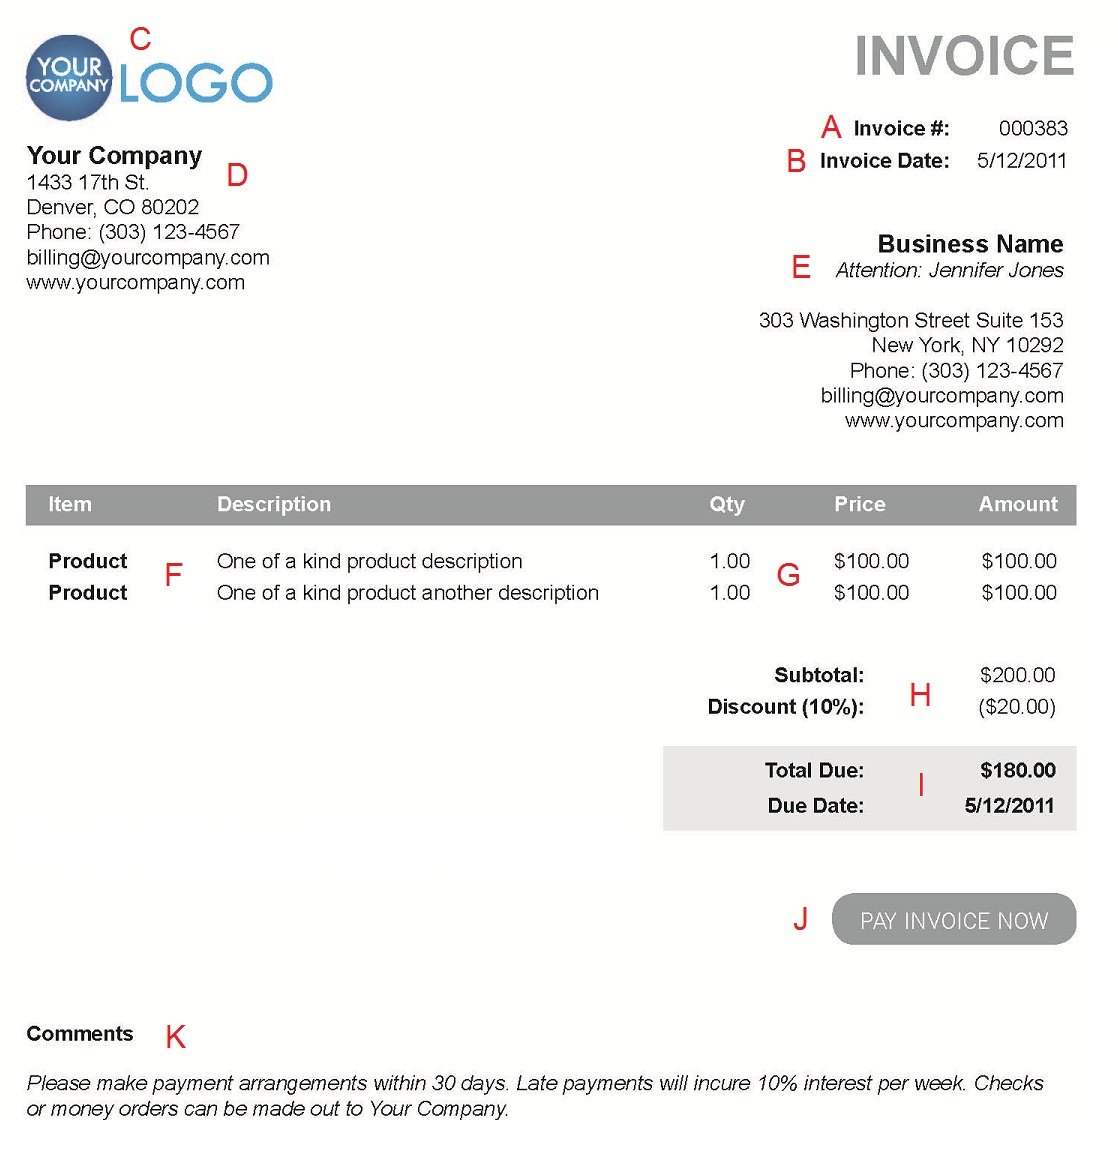 Pigbrotherus  Unique The  Different Sections Of An Electronic Payment Invoice With Exciting A  With Amazing Receipt Maker Online Also What Is The Uscis Form I Notice Of Receipt In Addition Missouri Personal Property Tax Receipts And Receipt Holder Spike As Well As Charity Receipt Additionally Toys R Us Return Without A Receipt From Paysimplecom With Pigbrotherus  Exciting The  Different Sections Of An Electronic Payment Invoice With Amazing A  And Unique Receipt Maker Online Also What Is The Uscis Form I Notice Of Receipt In Addition Missouri Personal Property Tax Receipts From Paysimplecom